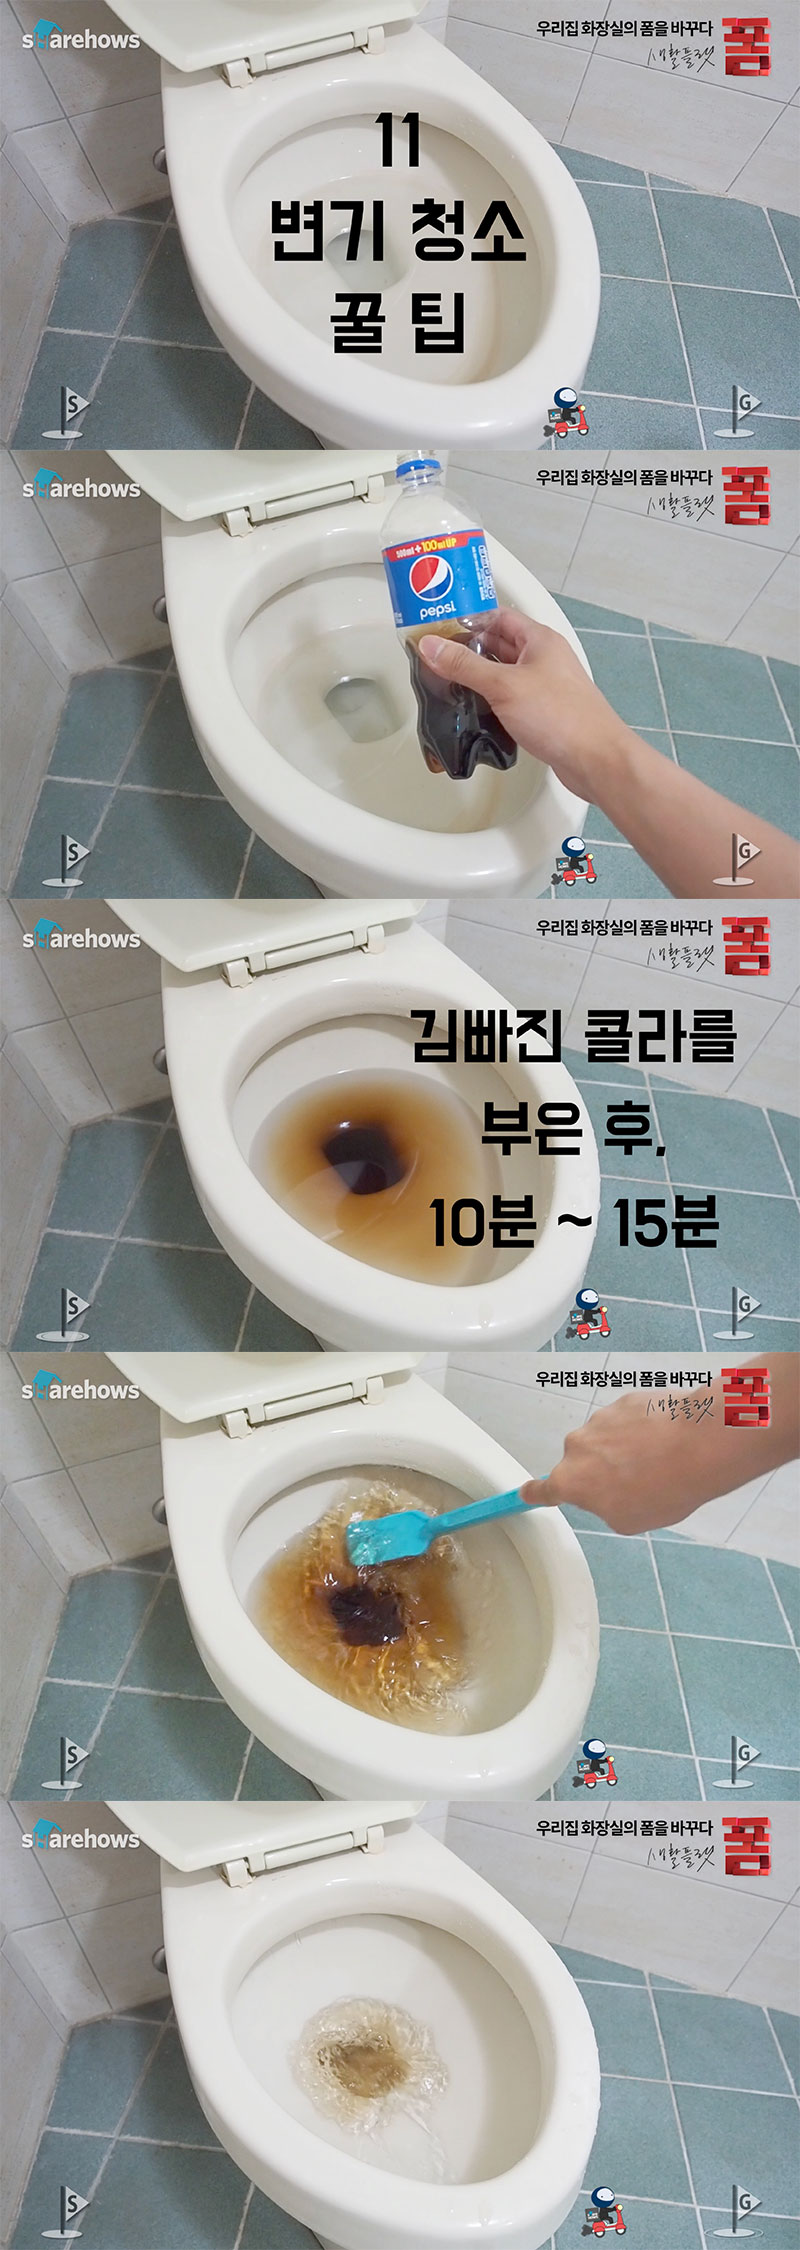 bathroom life hacks 16 11